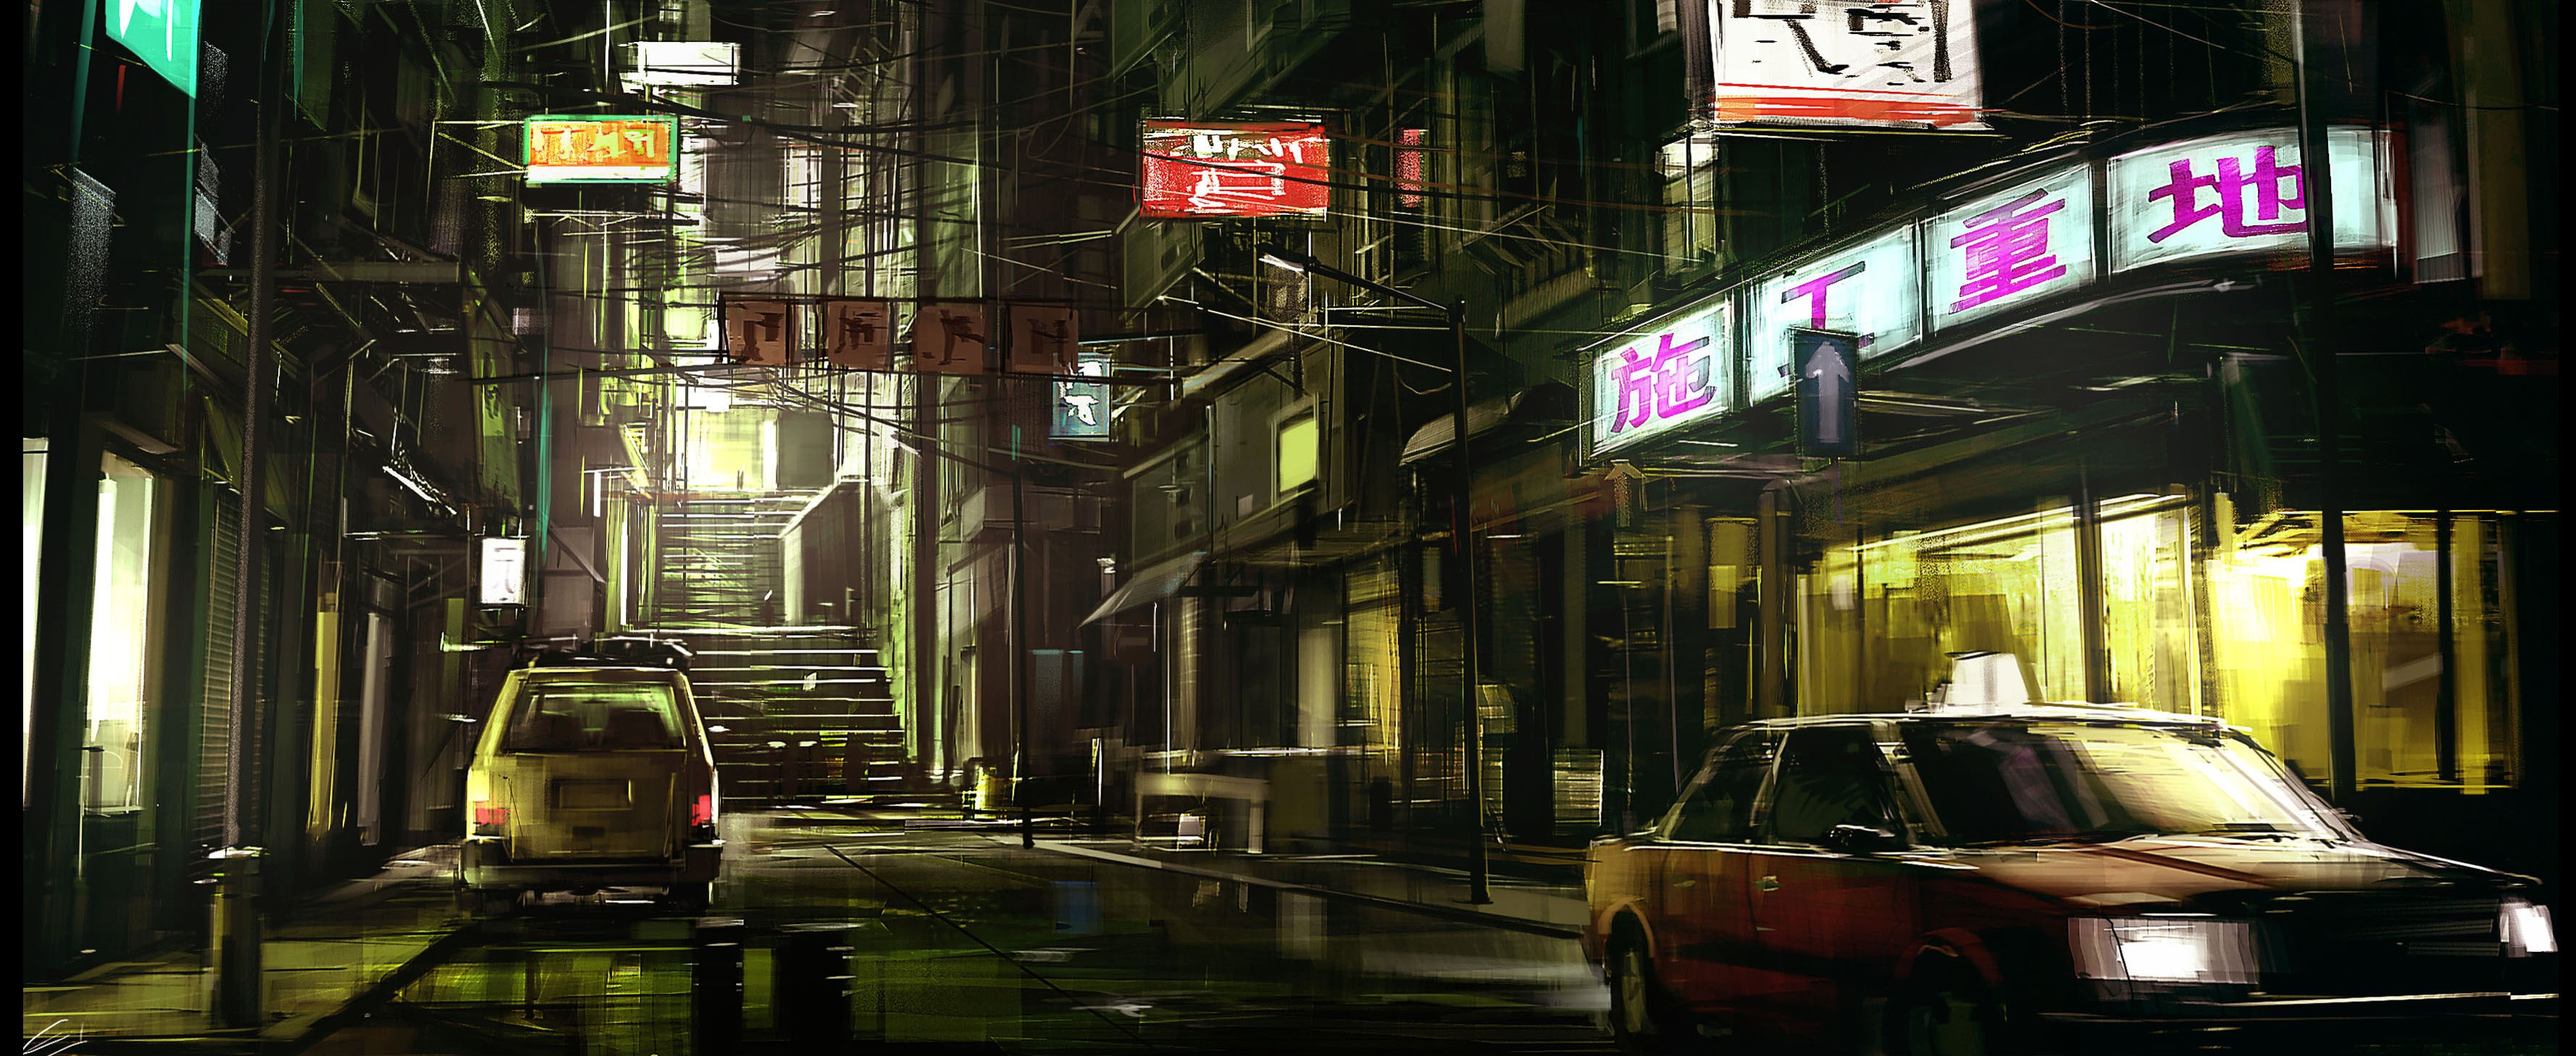 Car 5760x1080 Wallpaper Night Cityscape Japan Car Artwork Street Wallpapers